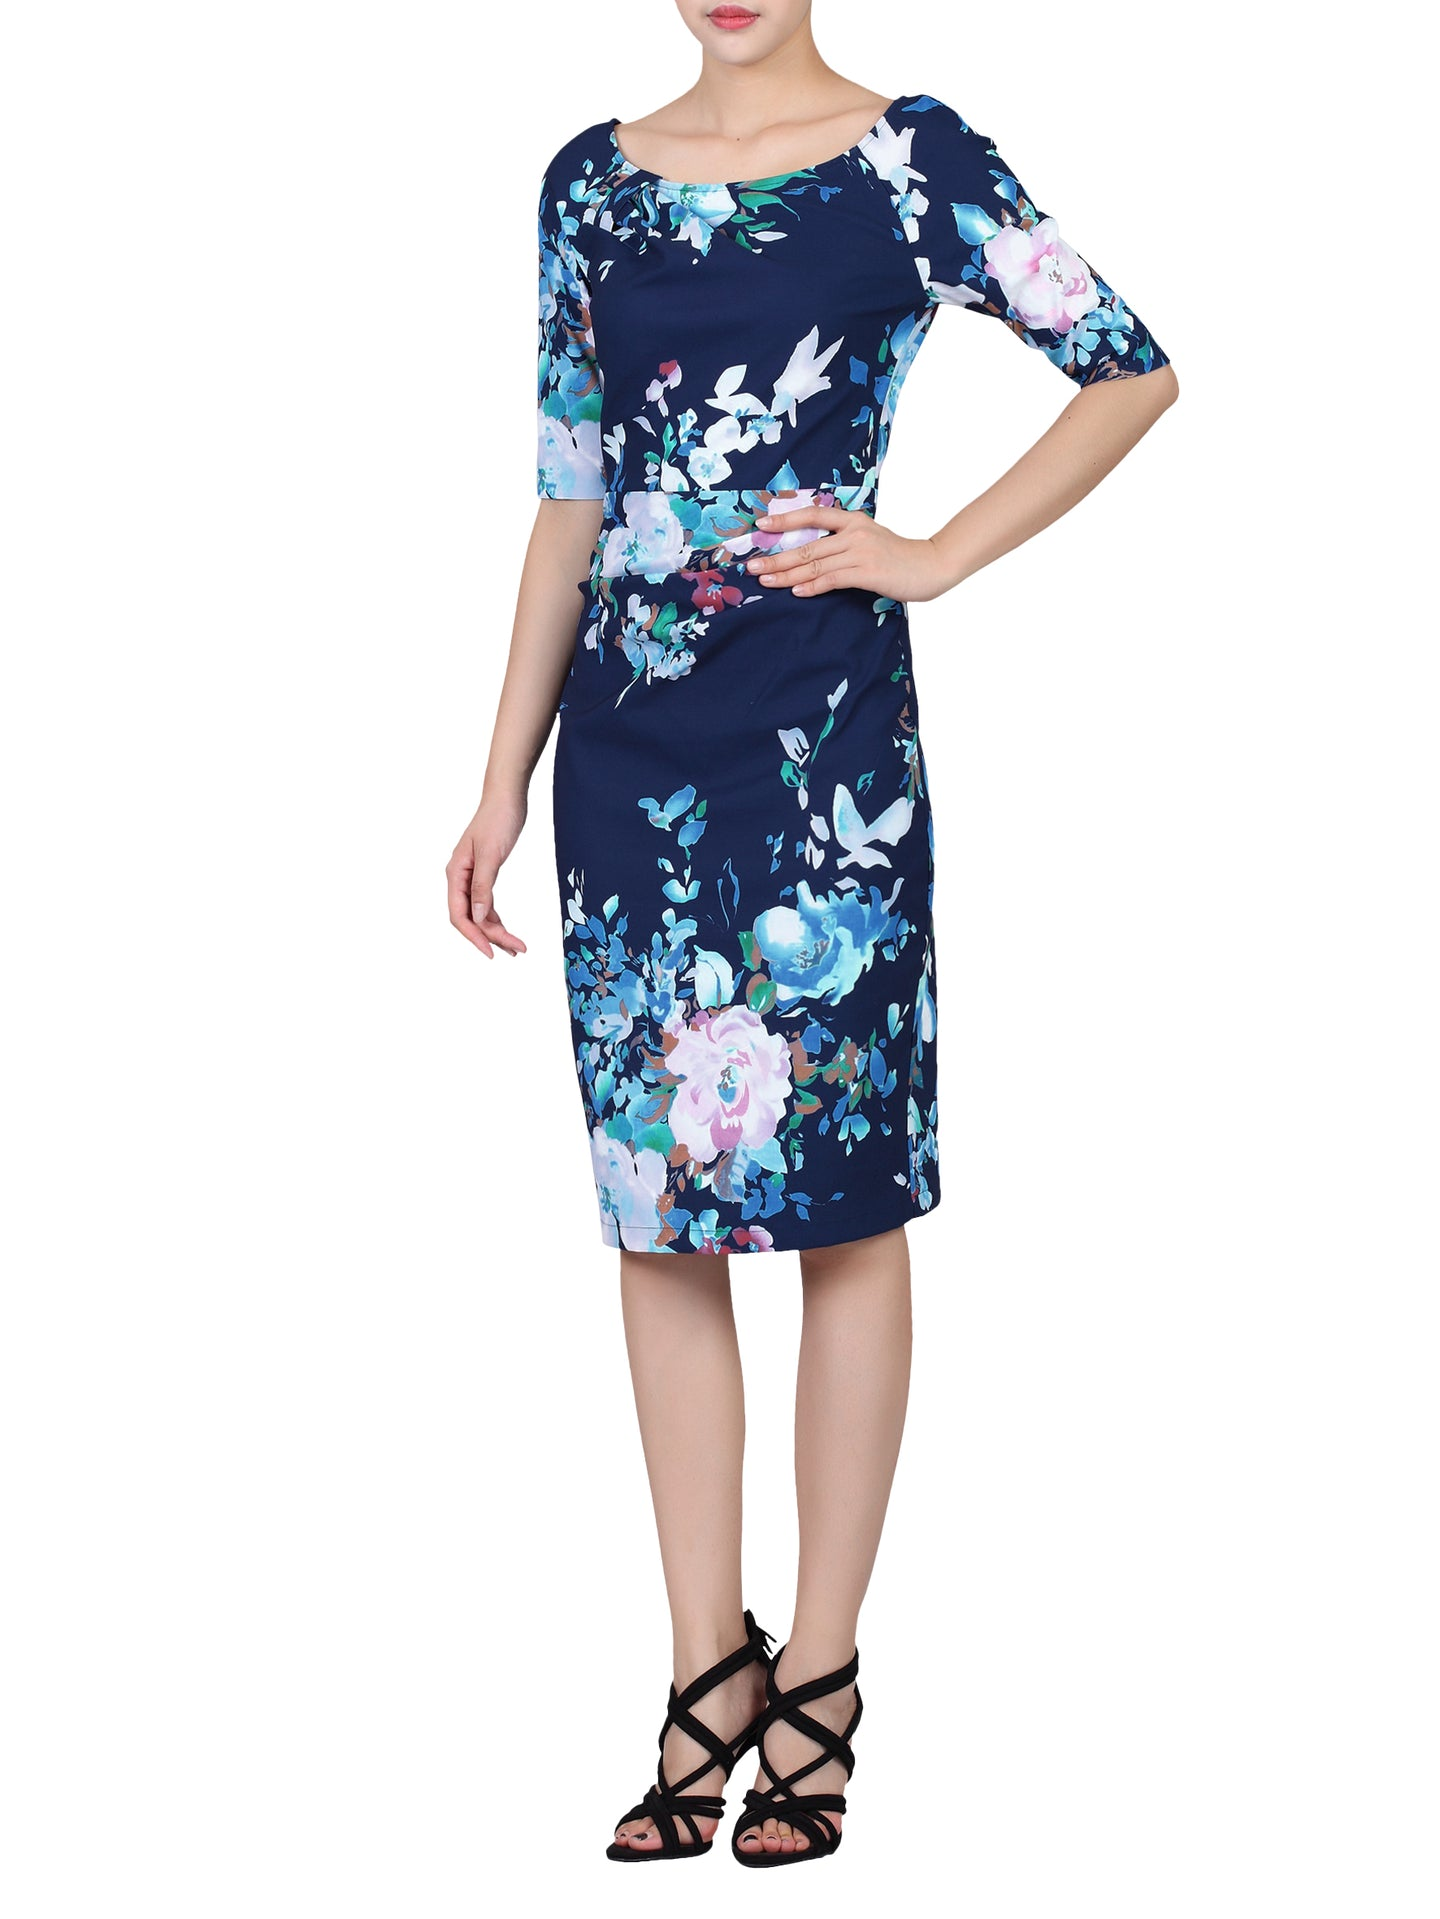 Floral Print 1/2 Sleeve Dress, Navy